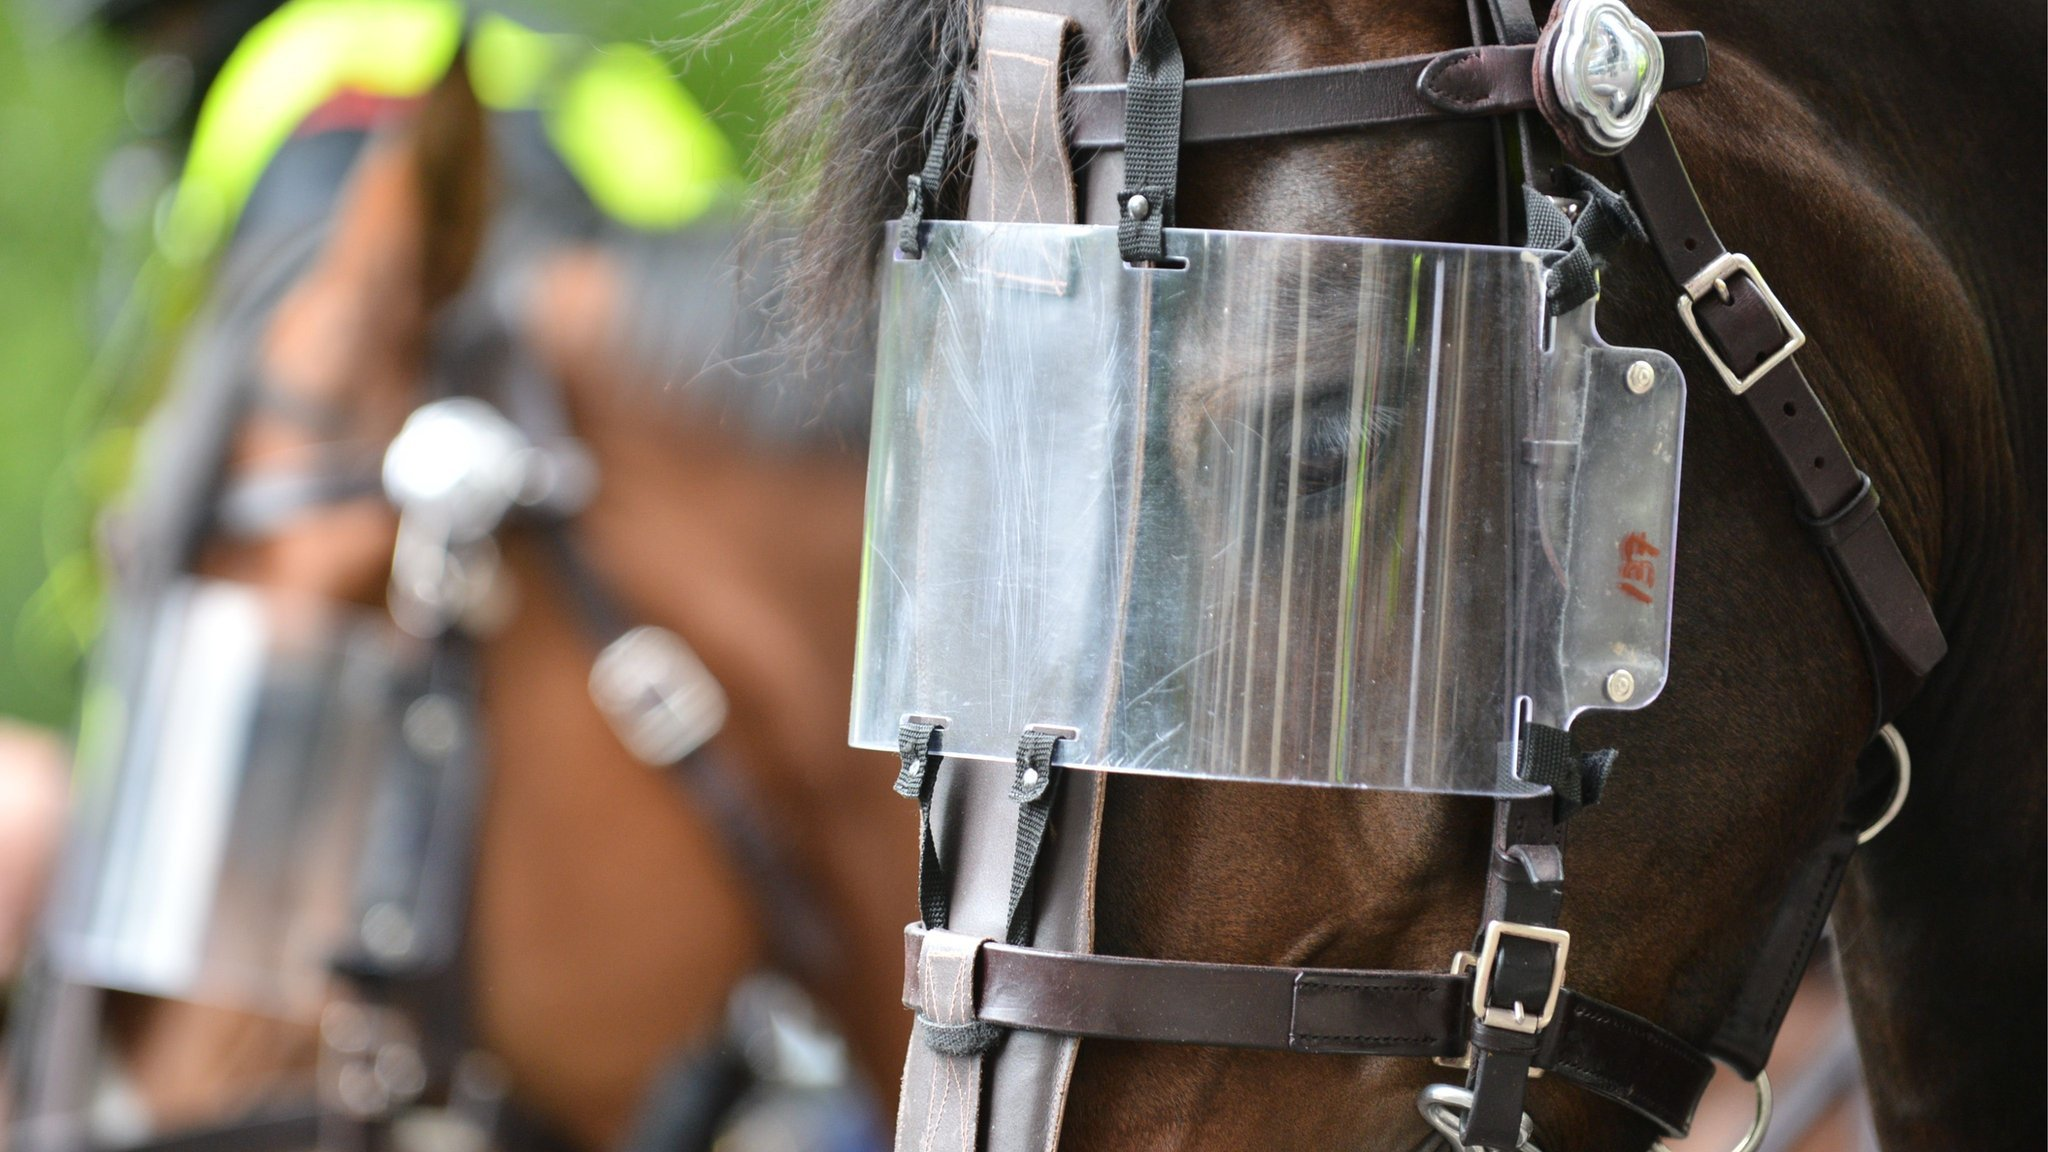 Celtic fan held for throwing burger at police horse